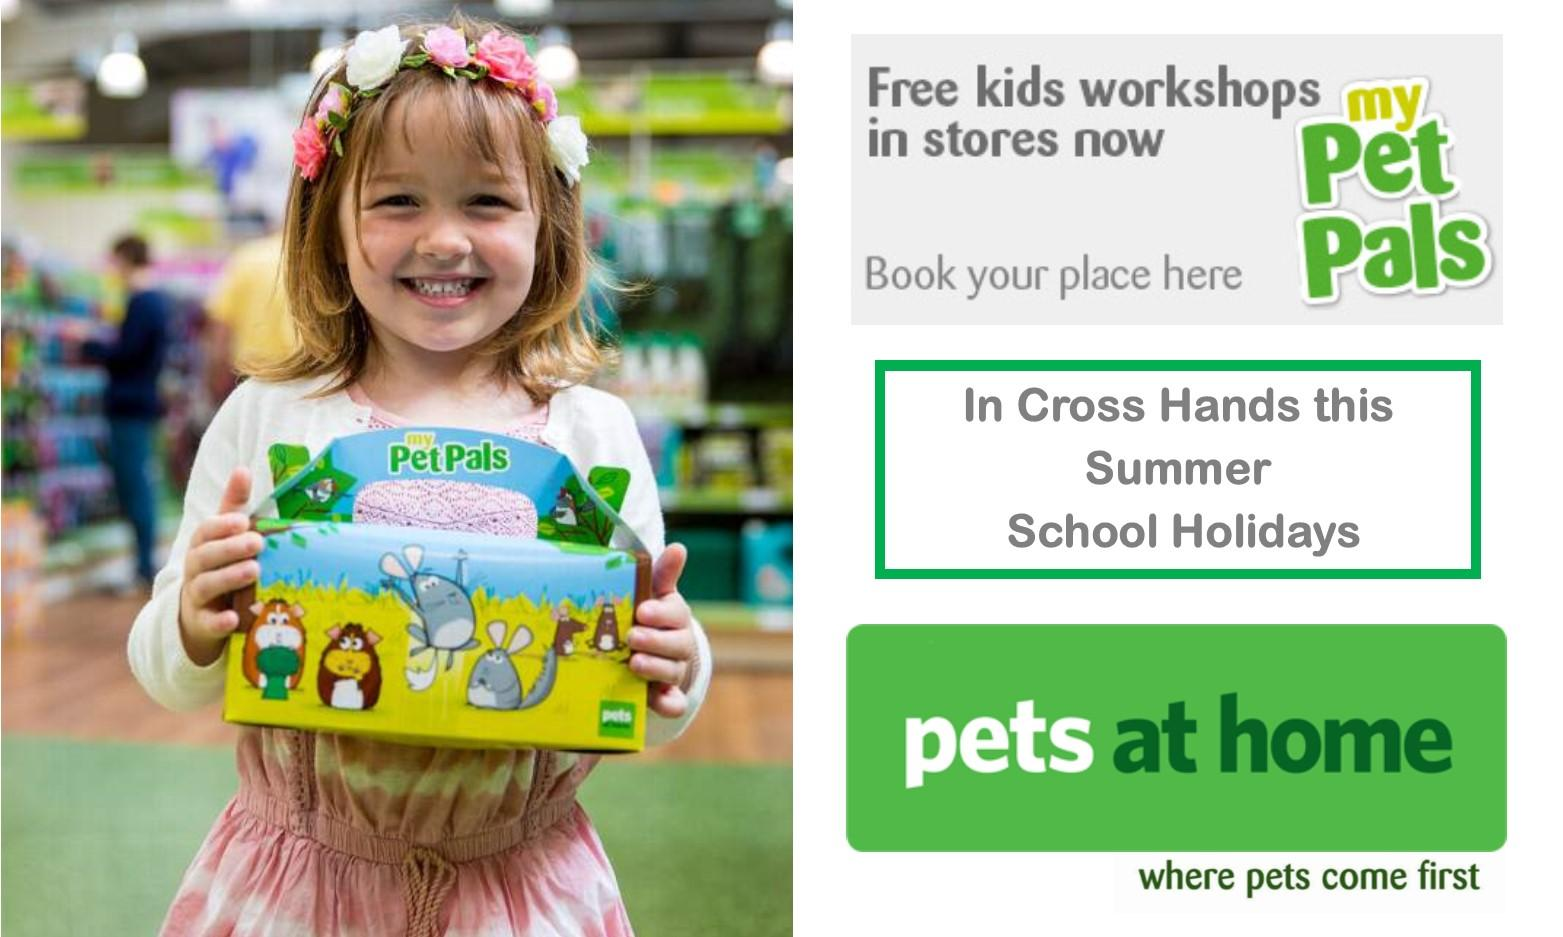 Summer Friendly Fish Pets at Home Workshop in Cross Hands